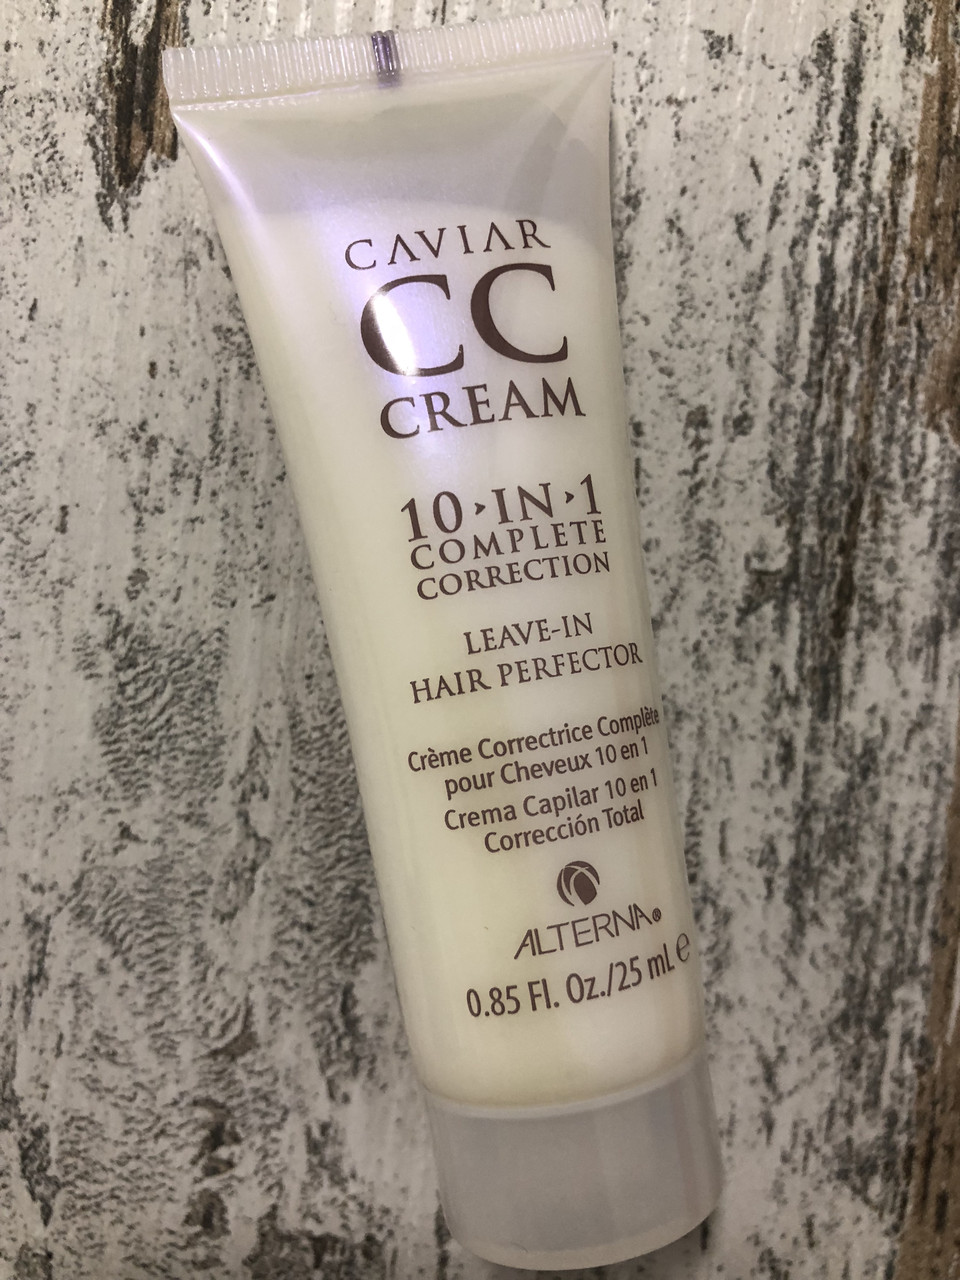 Чудо-крем для волос ALTERNA Caviar CC Cream 10-in-1